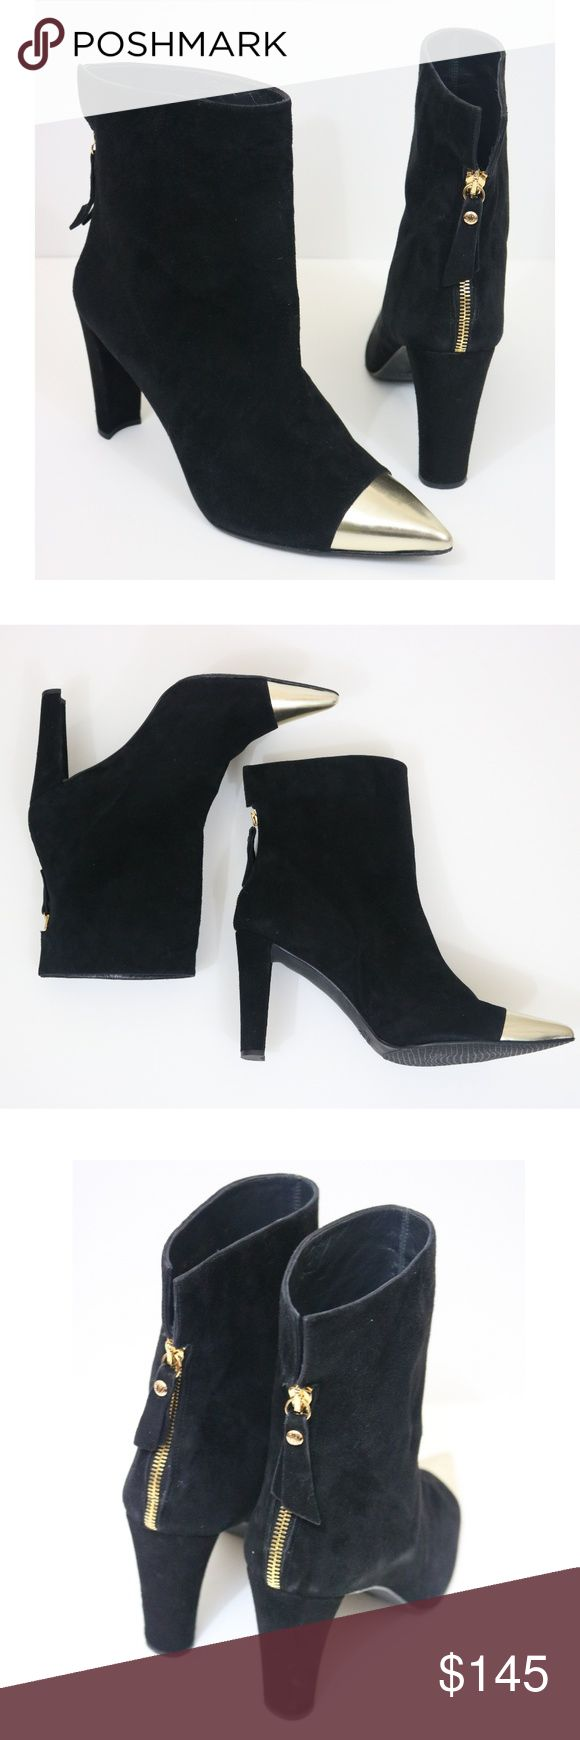 Stuart Weitzman Suede Gold Toe Chunky Heel Boots Stuart Weitzman brand. Never Worn. Zip back boots. Suede with gold closed pointed toe detail. Size 11. Thicker chunky heel. Stuart Weitzman Shoes Heeled Boots